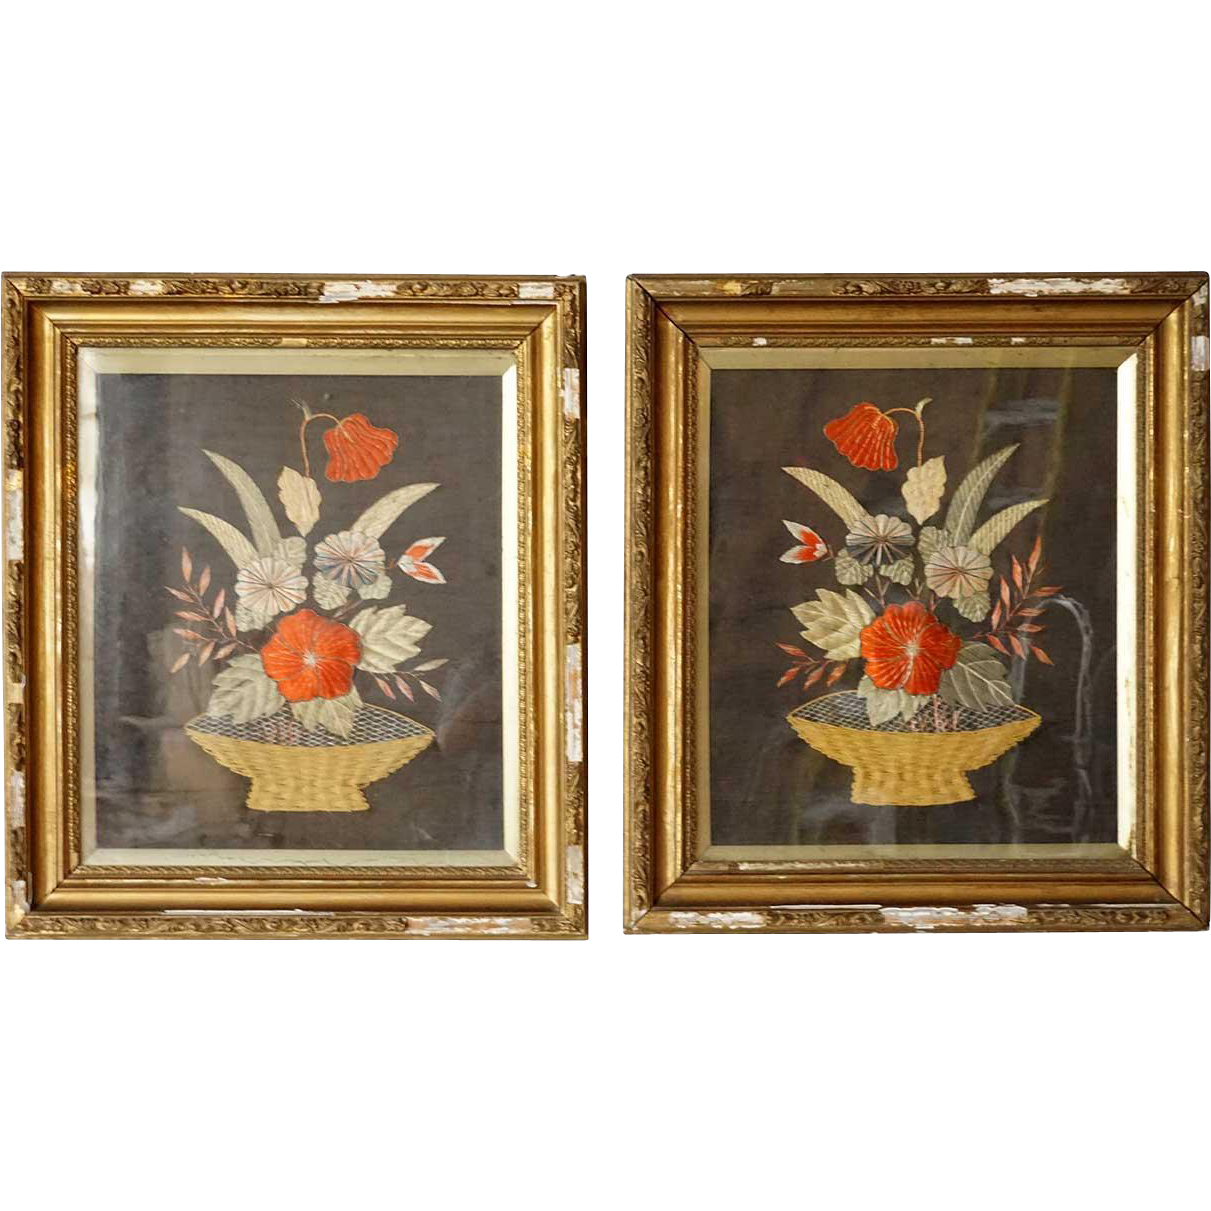 Pair of English Victorian Stumpwork Embroidery Panels